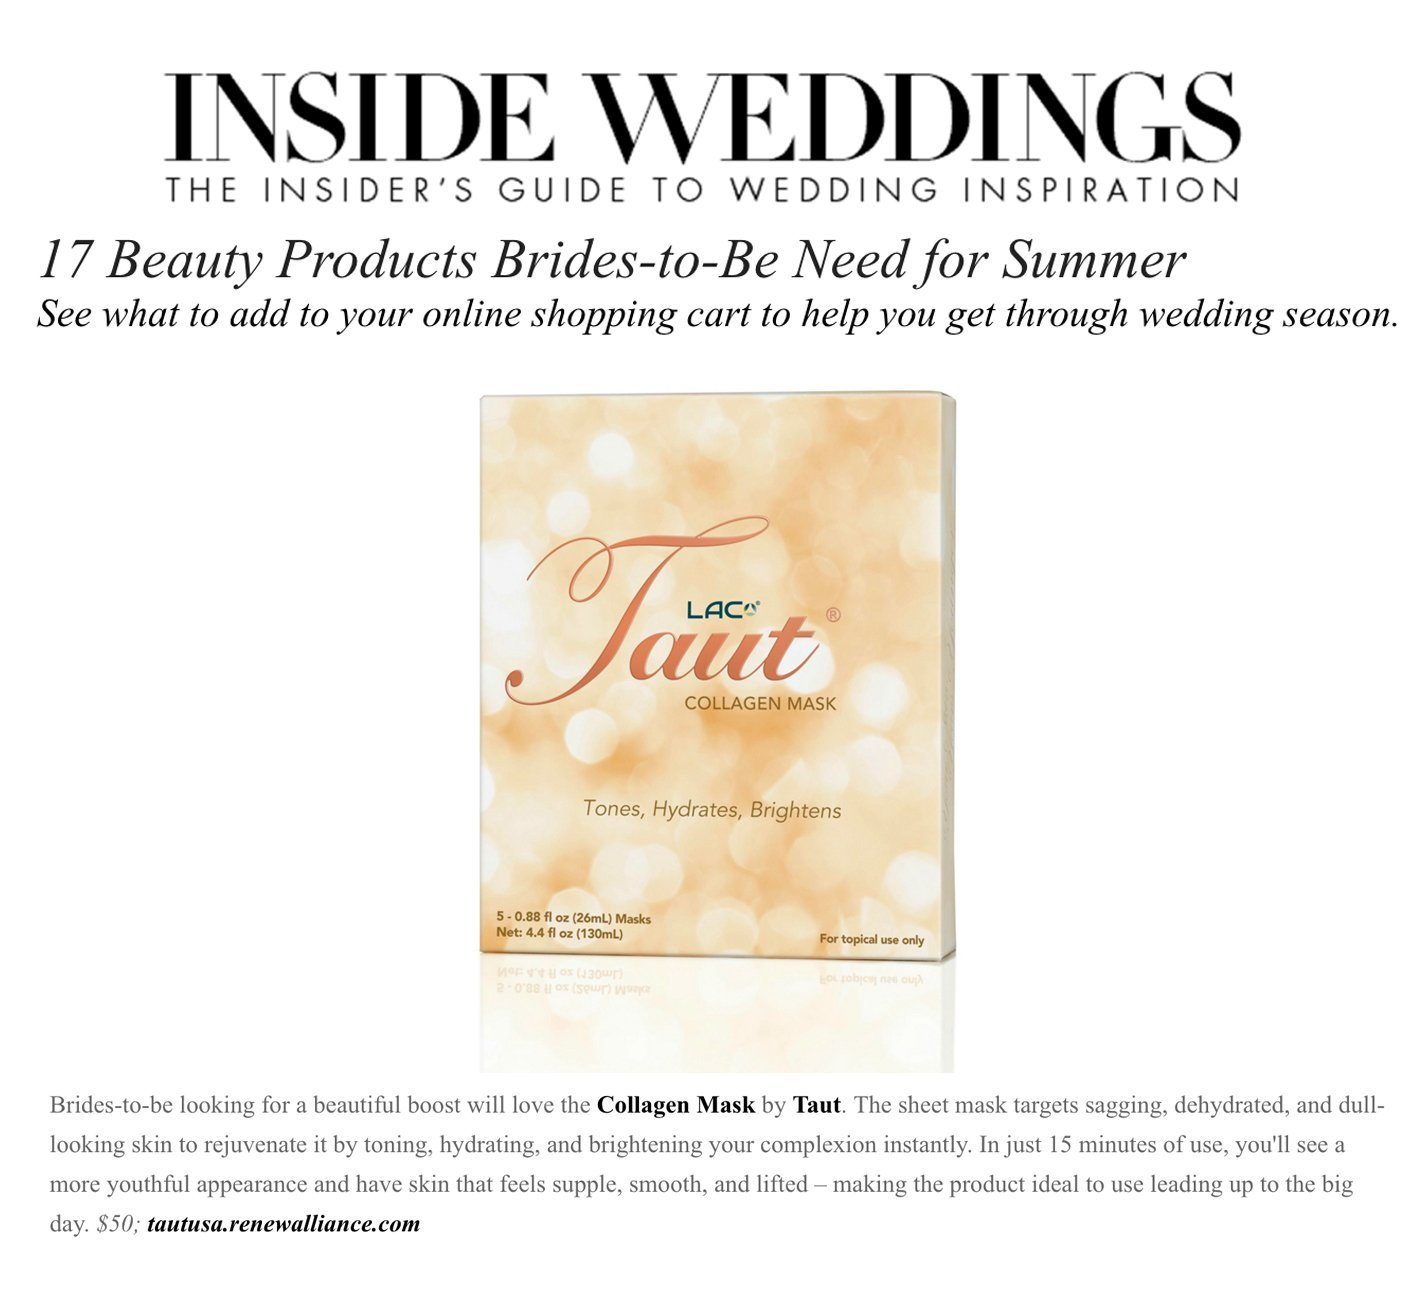 Collagen mask for brides and bridal skincare